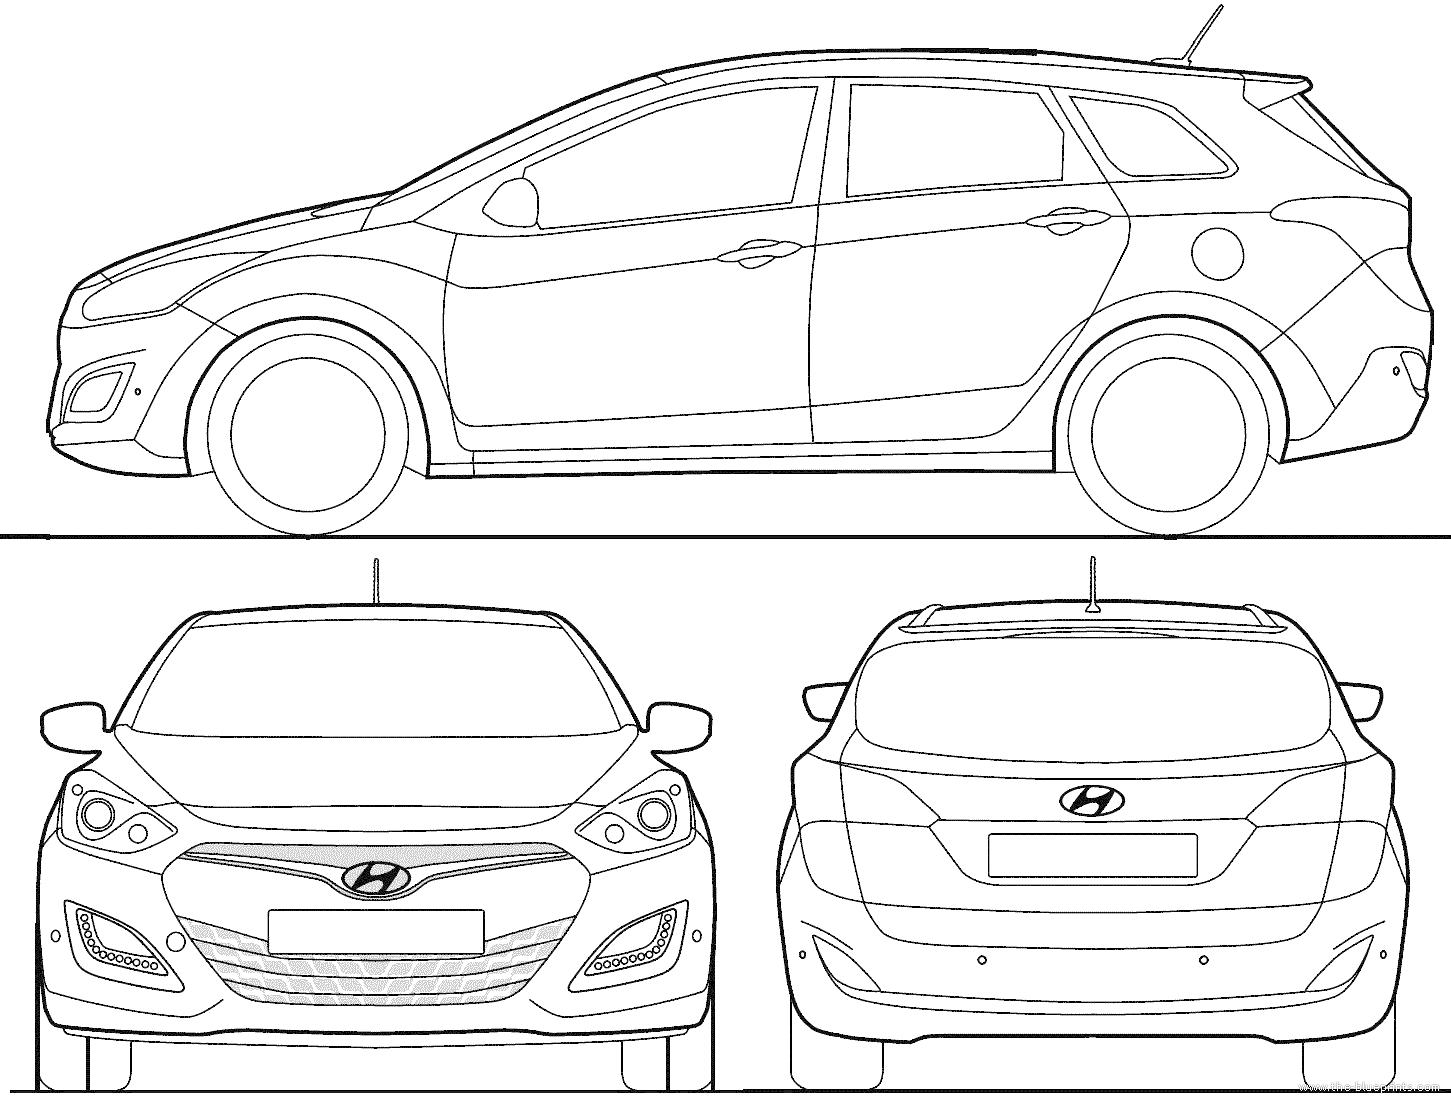 audi a3 with Most Loved Car Blueprints For 3d on 4 further 22579 moreover Coloriage Voiture Audi likewise Cercle 155082 Debats Sur La Laicite En Suisse Quels Apports Concrets 1206417 furthermore 2009 Mazda Cx 9 Srs Air Bag Wiring And Schematic Diagram.